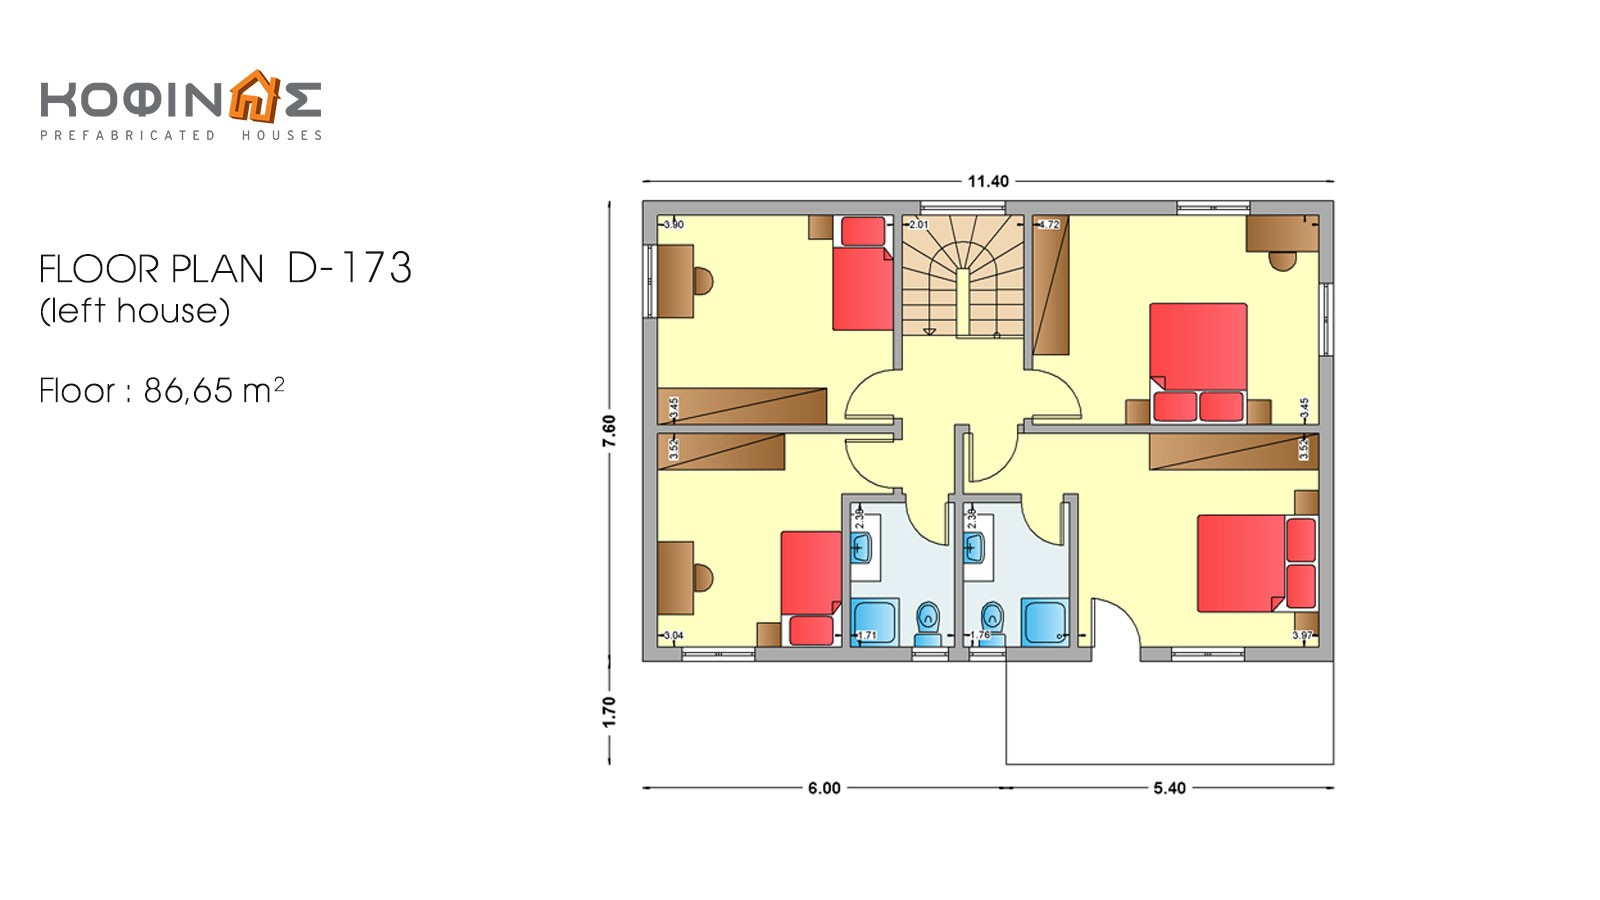 2-story house D-173, total surface of 173,30 m²